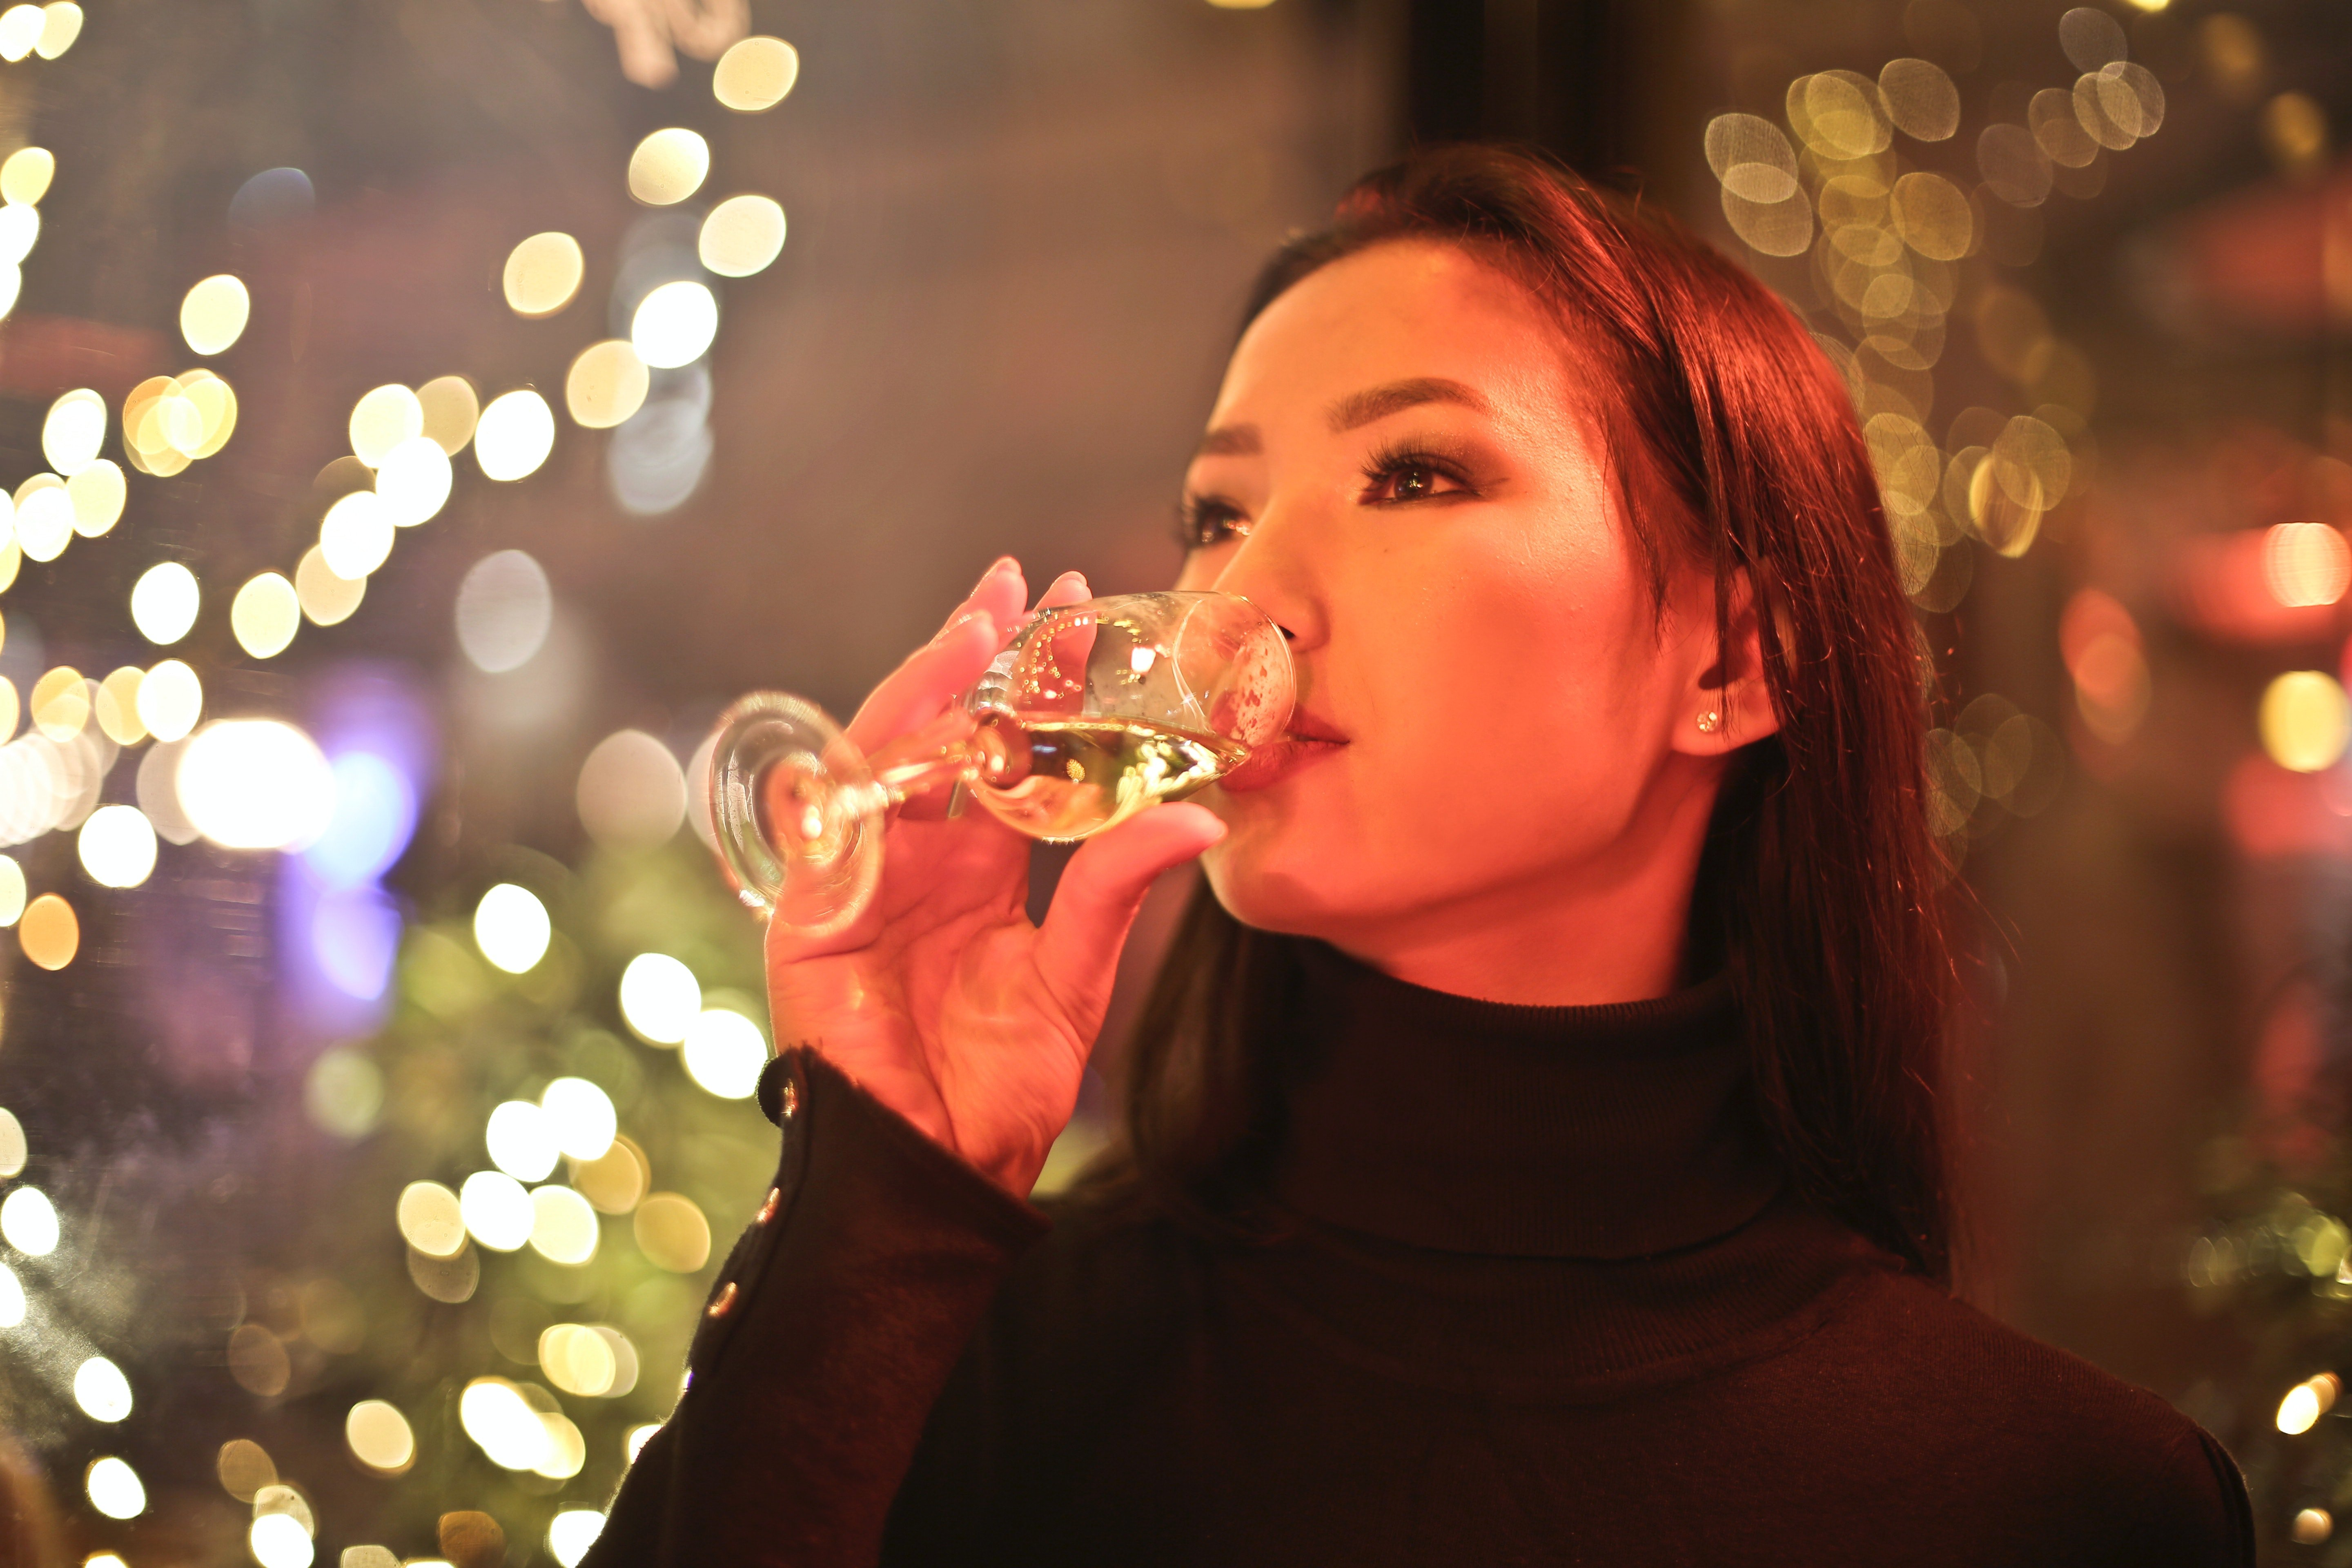 Woman drinking champagne | Photo: Pexels